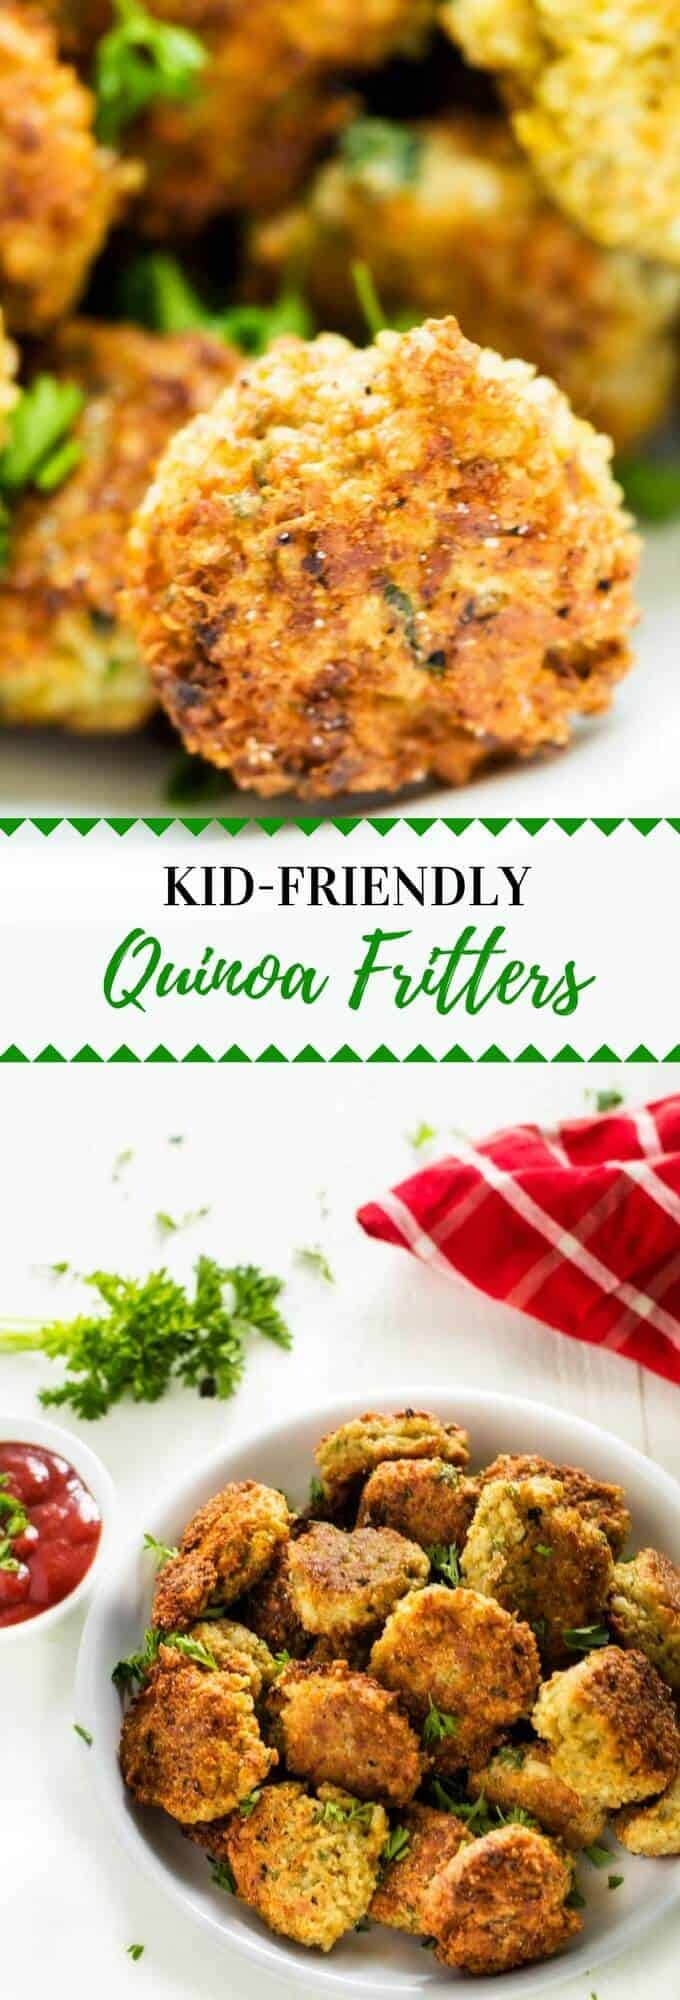 Kid friendly quinoa fitters quinoa recipes for kids these kid friendly quinoa fritters are one of my favorite quinoa recipes for kids the forumfinder Choice Image